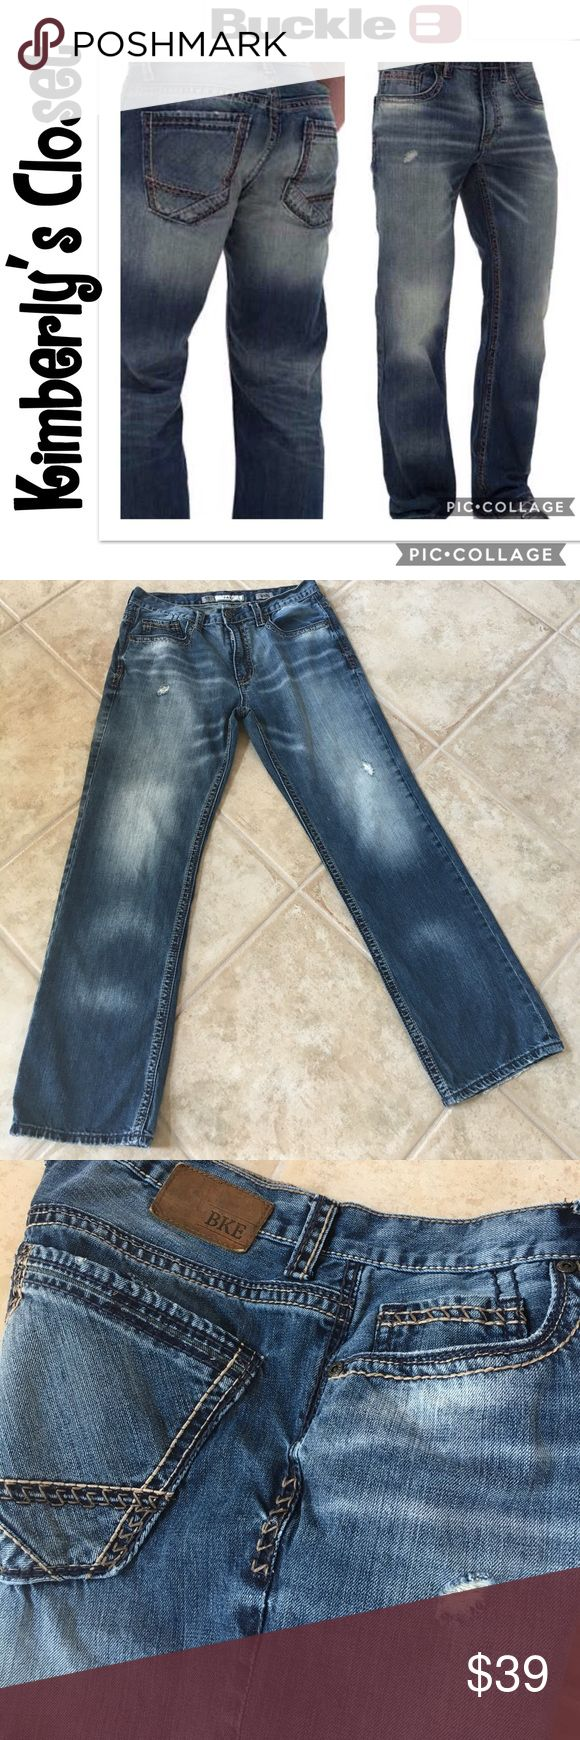 """🌟MEN'S BKE JEANS🌟 Go back to school in these super trendy Men's BKE (Buckle Brand) Jake jeans.  Regular fit; bootcut; 100% cotton comfort stretch fabric; mid rise; hand sanding, whiskering, grinding, and thick stitch details; zip fly.  31"""" inseam.  Gently used - great condition.  Only sign of wear is some fraying around bottom leg openings (see photos). BKE Jeans Bootcut"""